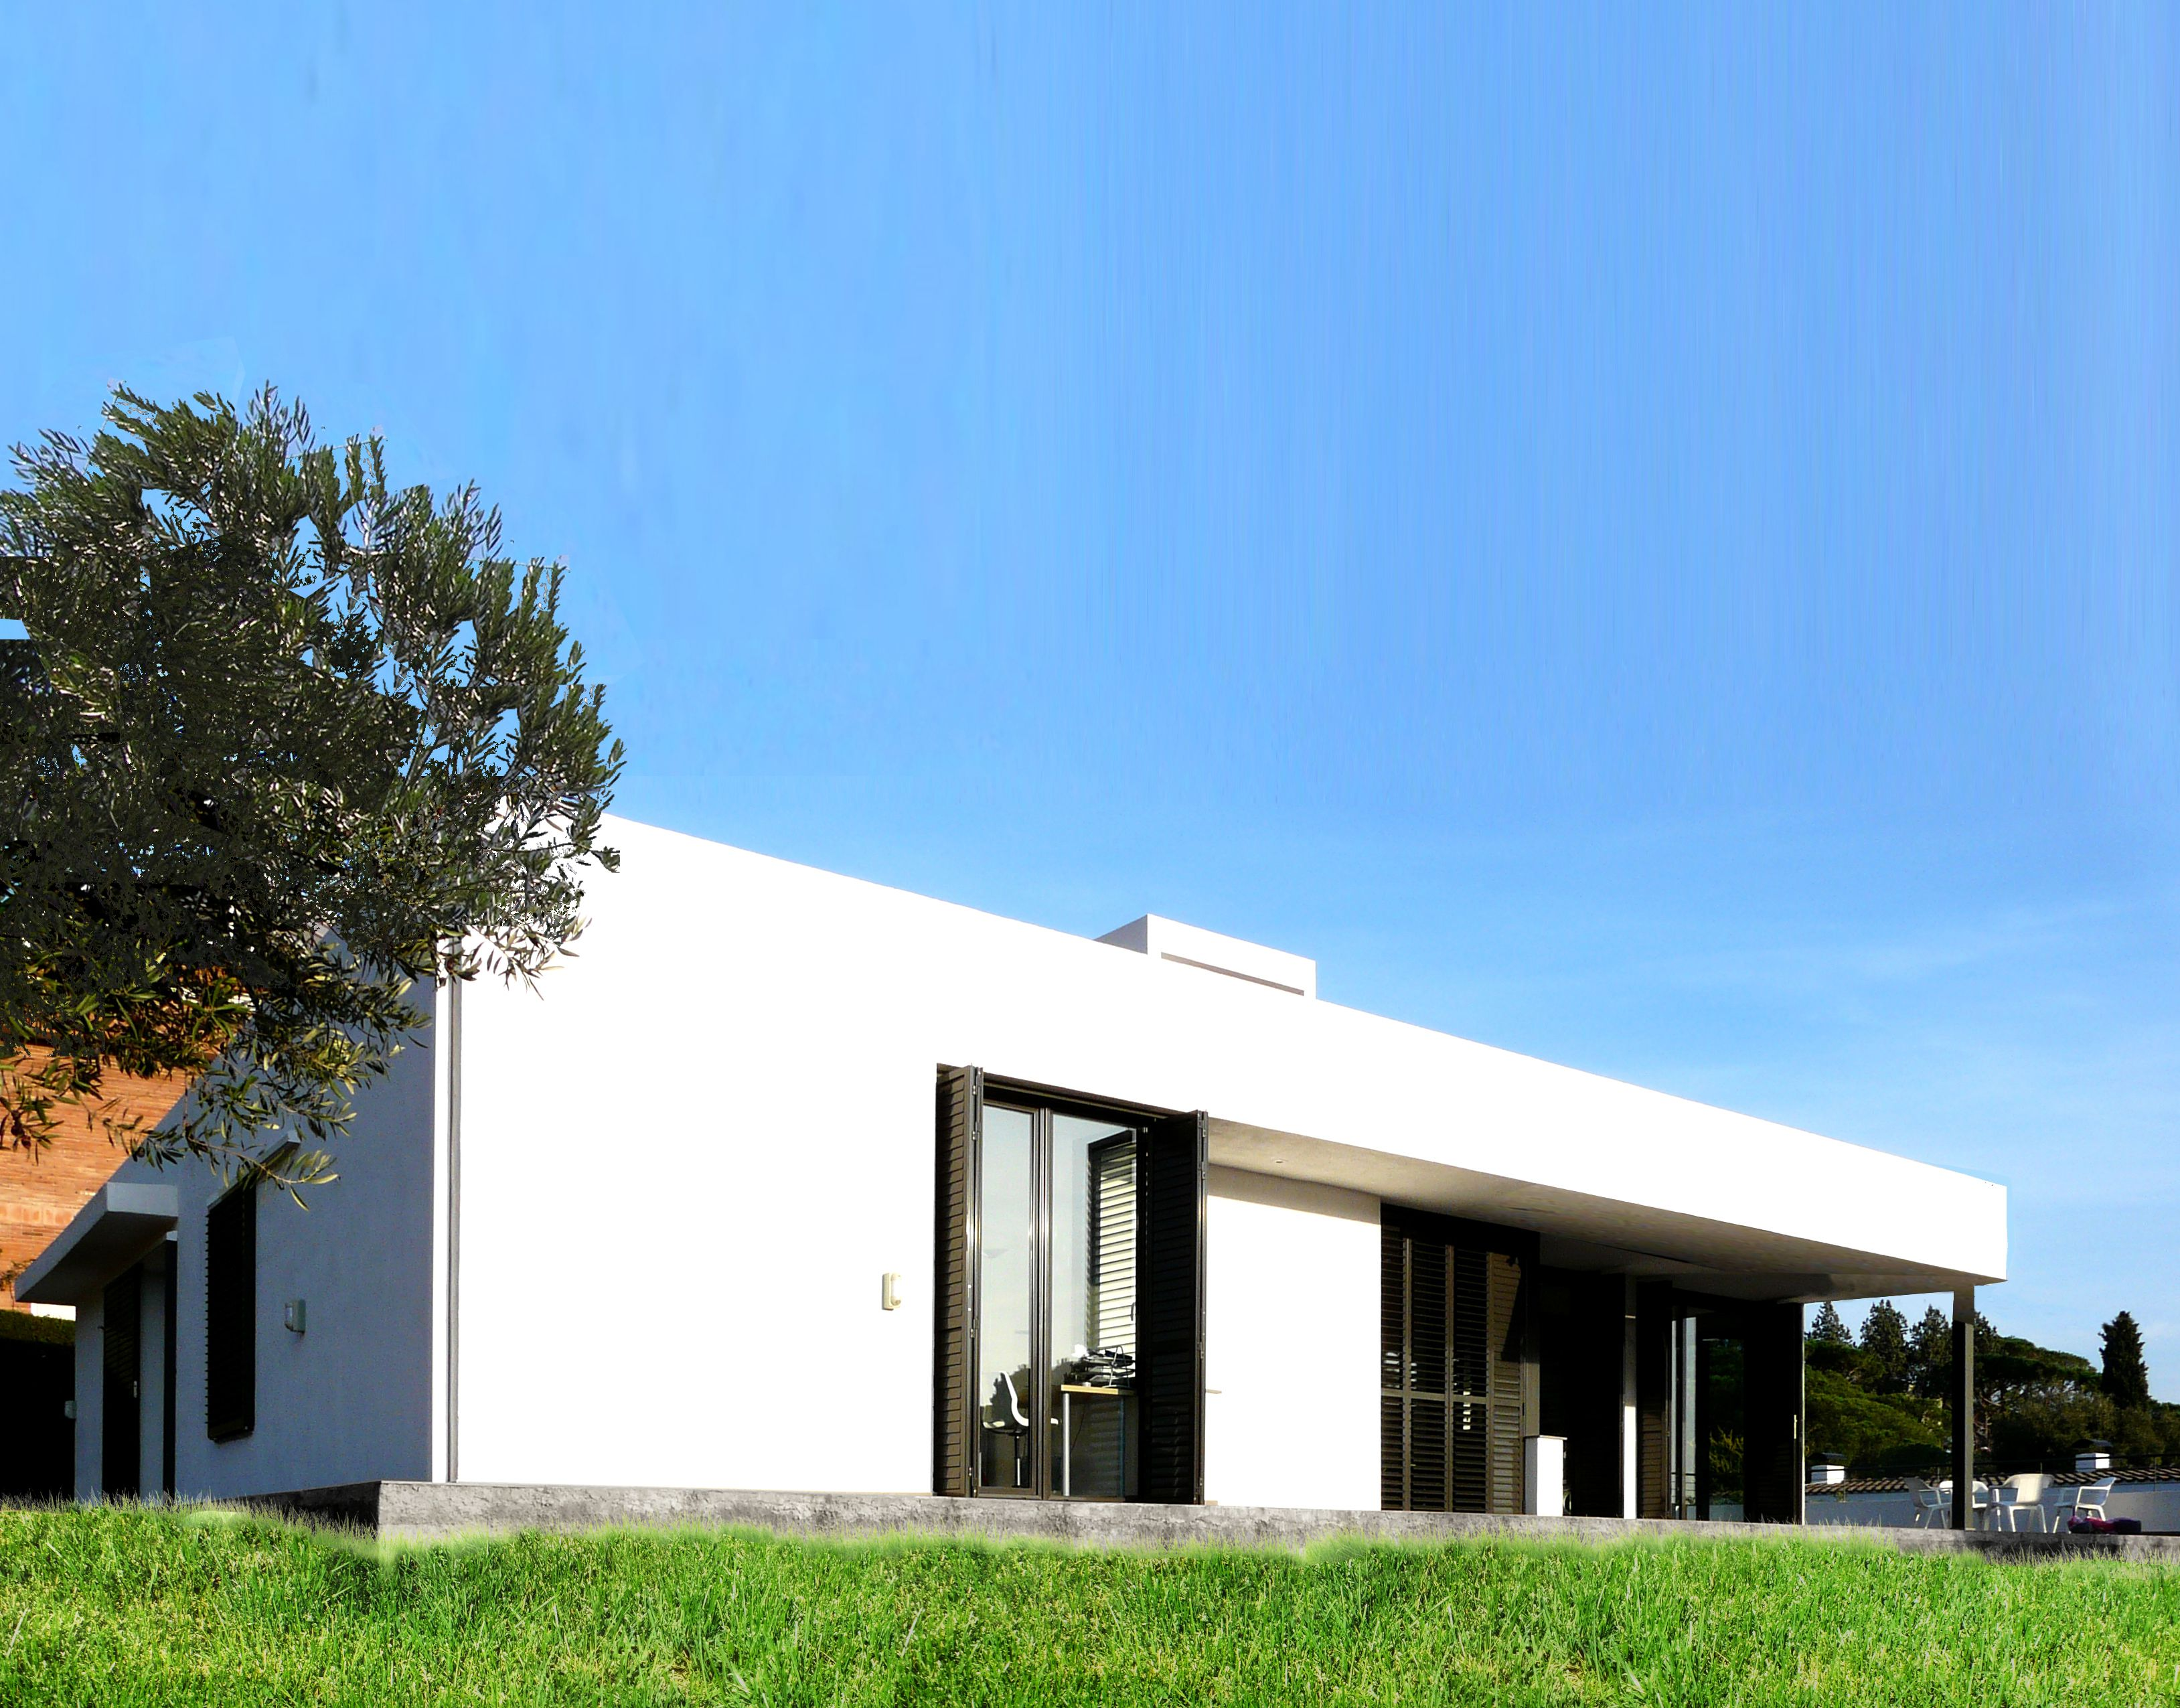 1000+ images about arhitectura on Pinterest